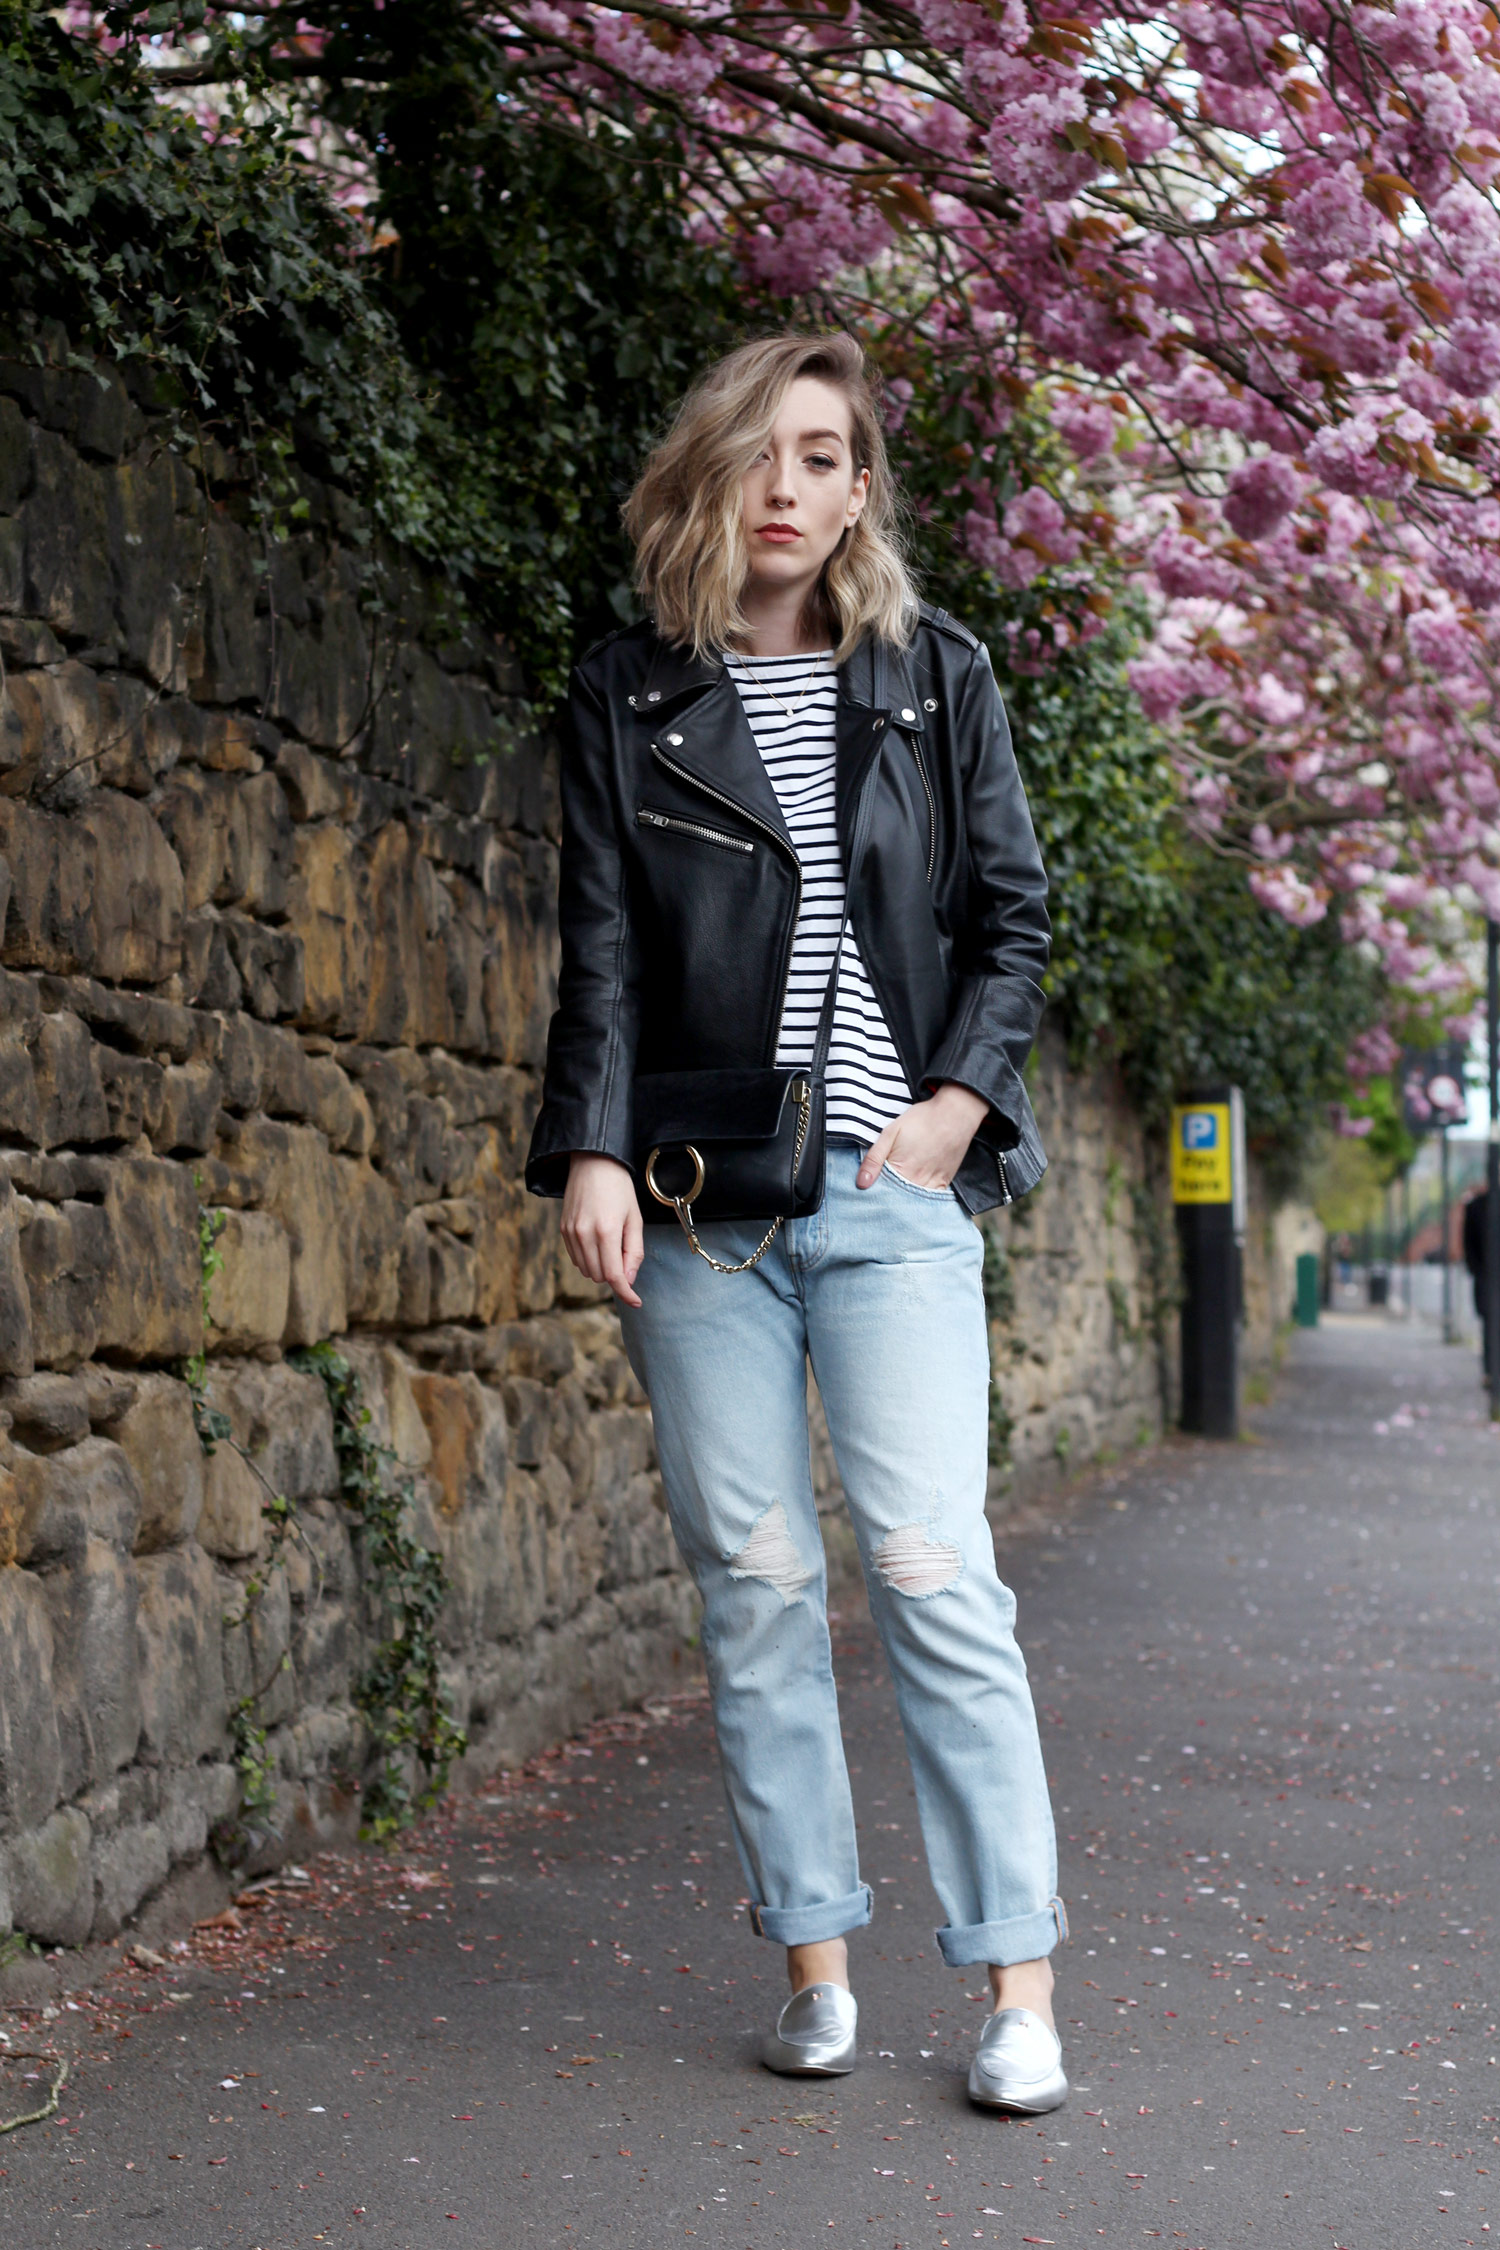 ted-baker-silver-loafers-leather-jacket-boyfriend-levi-stripe-top-